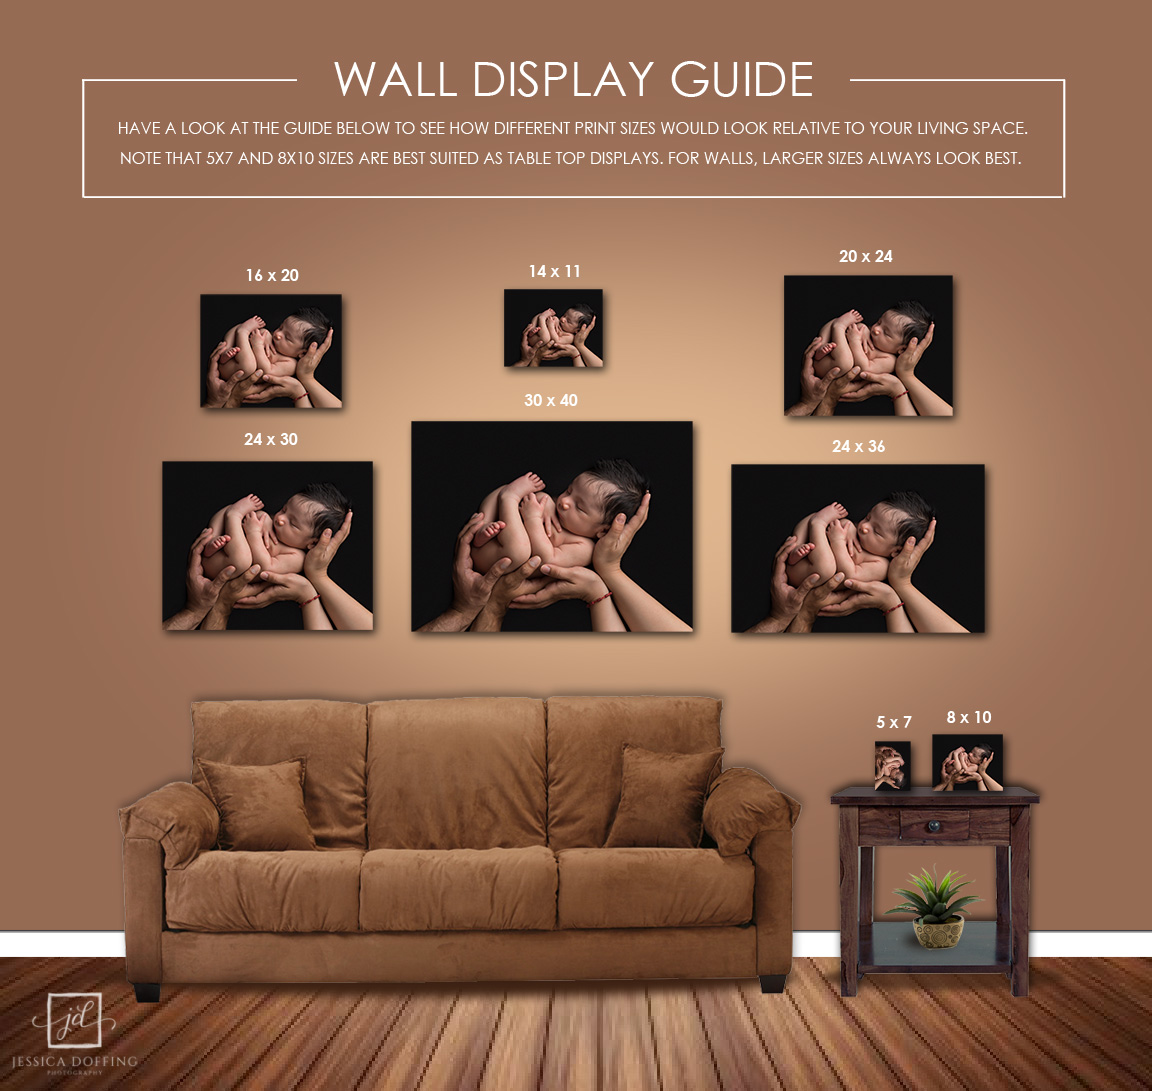 Wall display showing different size prints.